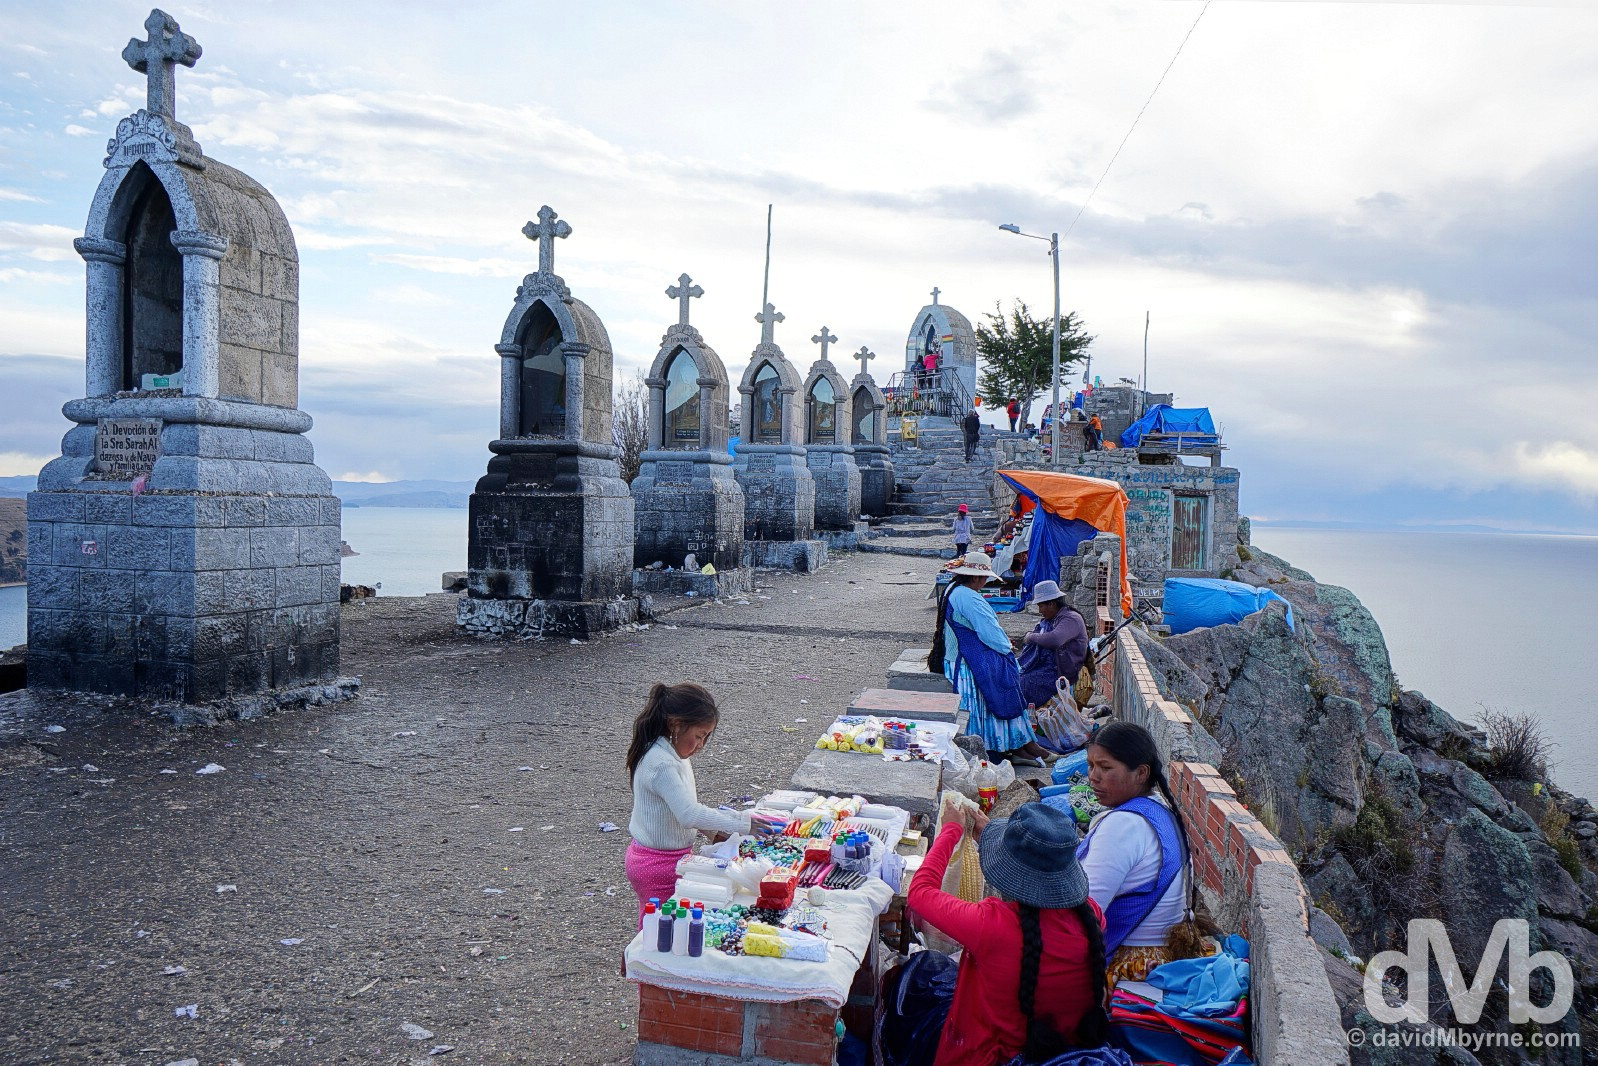 The summit of Cerro Calvario overlooking Lake Titicaca & the town of Copacabana, Bolivia. August 23, 2015.